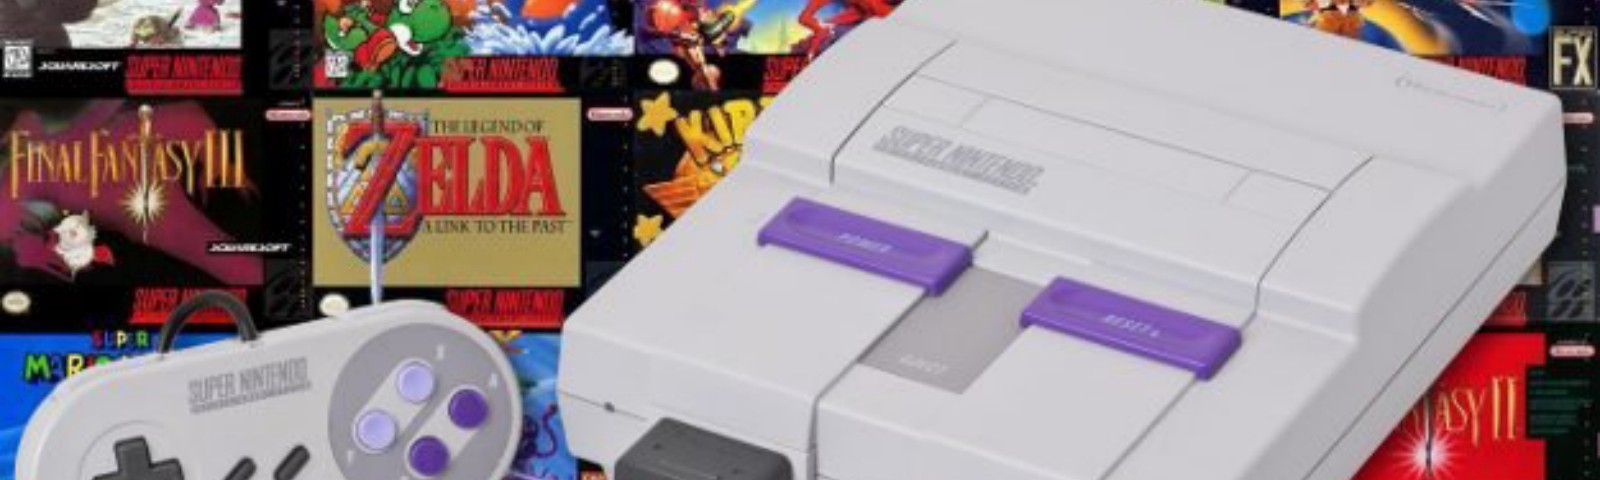 Pushing The Super Nintendo To Its Absolute Limit By Alex Beyman Predict Medium 5 people have used it. super nintendo to its absolute limit